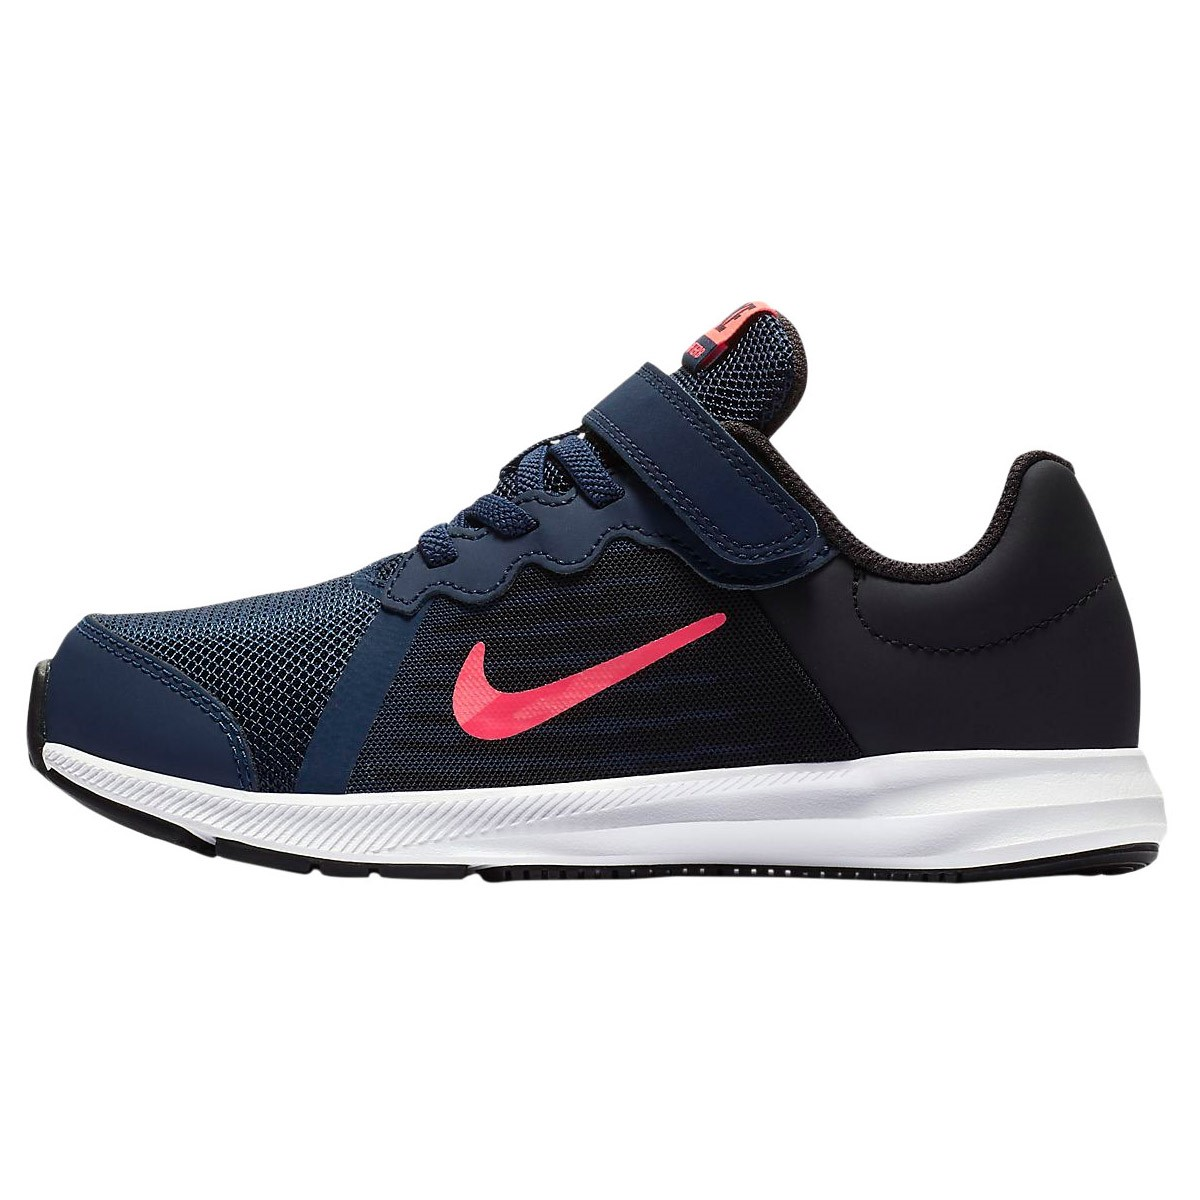 Nike Downshifter 8 PSV Kids Running Shoes